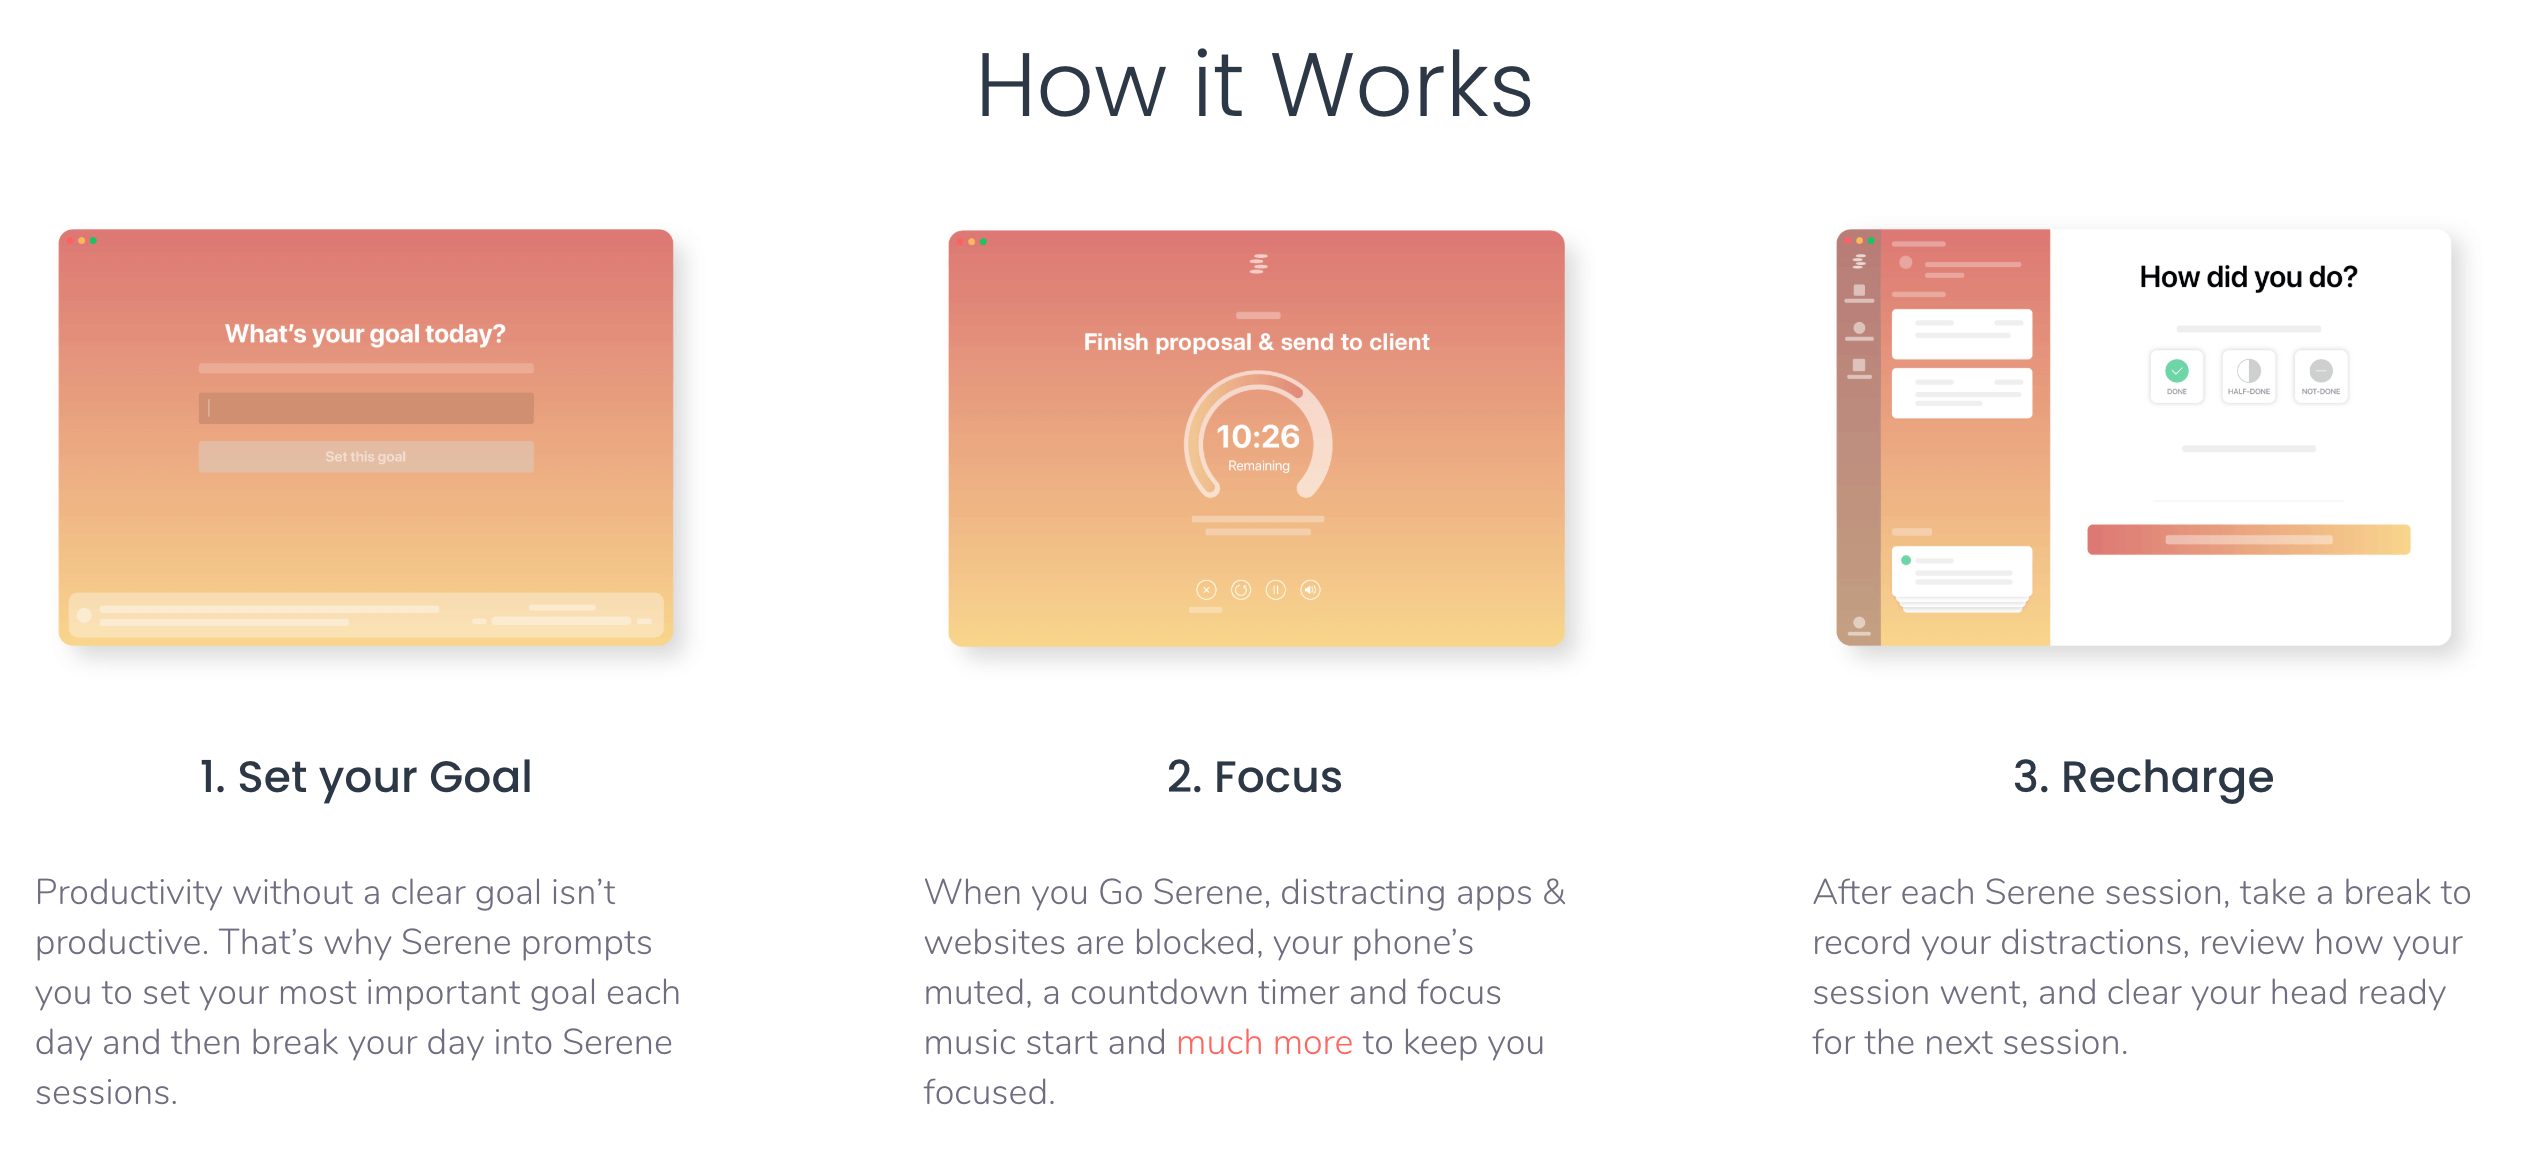 Serene app how it works